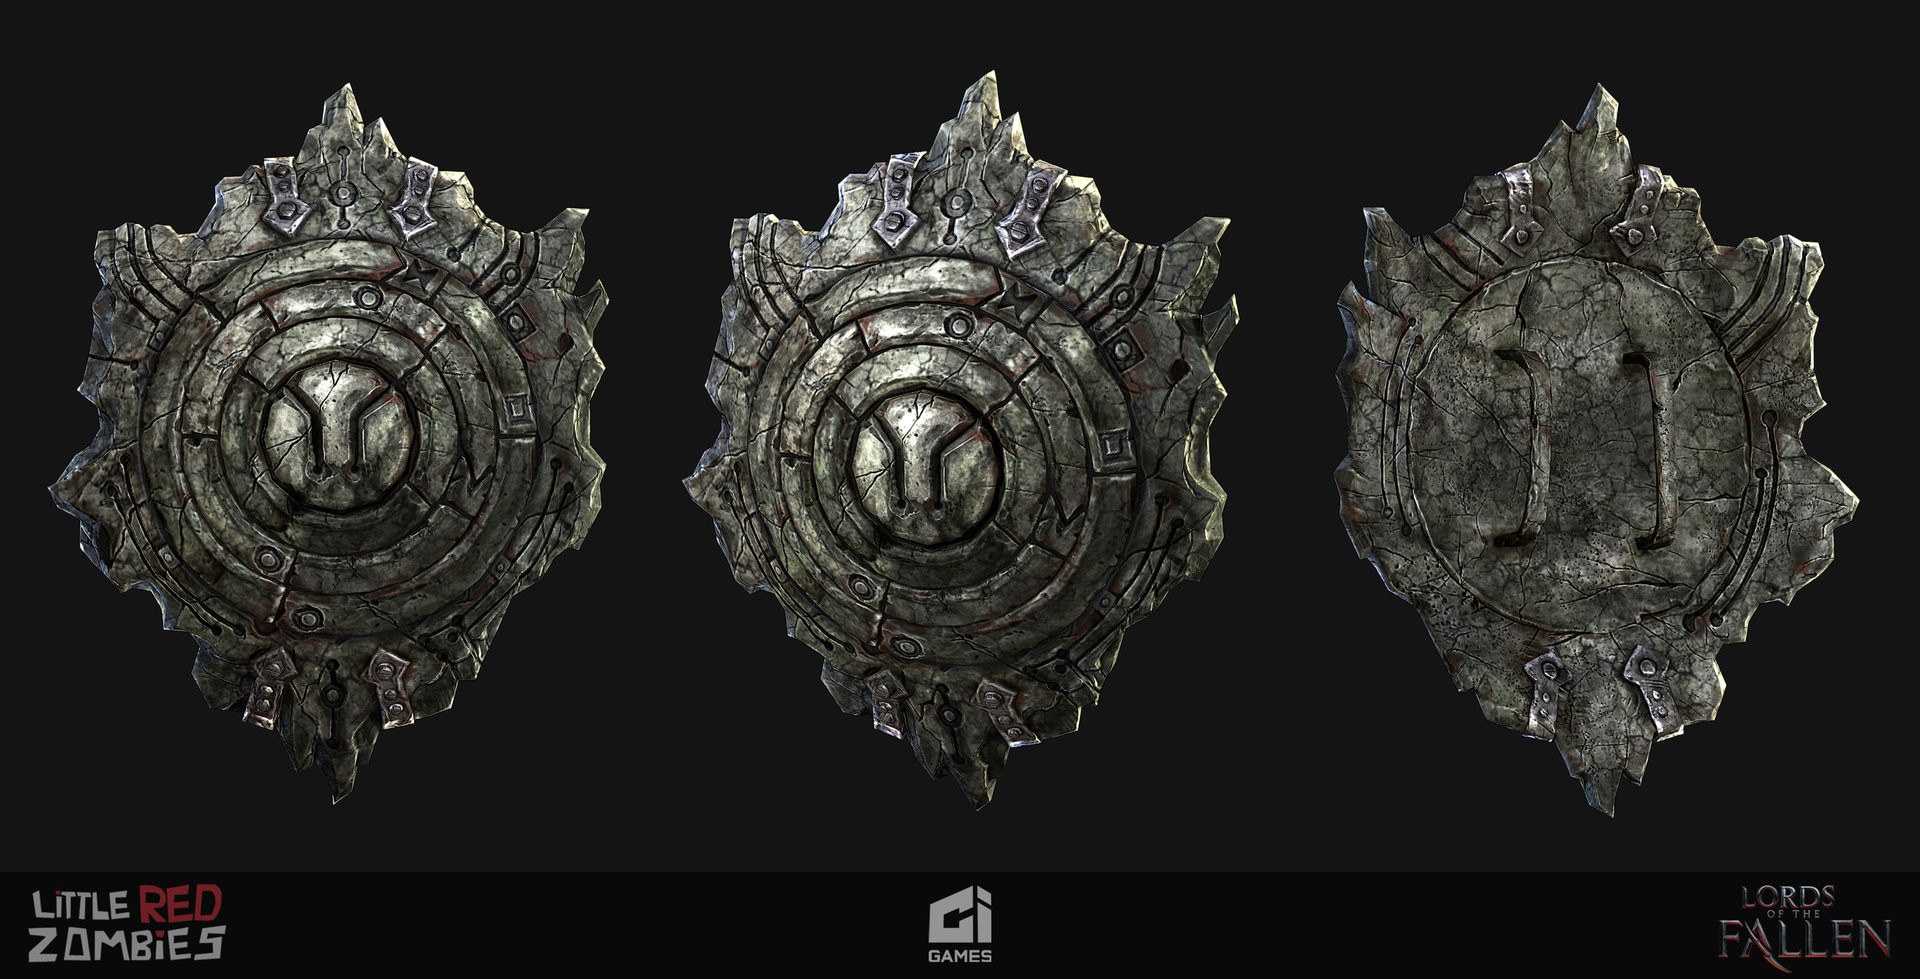 Tushank k jaiswal tushank k jaiswal lords of the fallen dlc shield 2